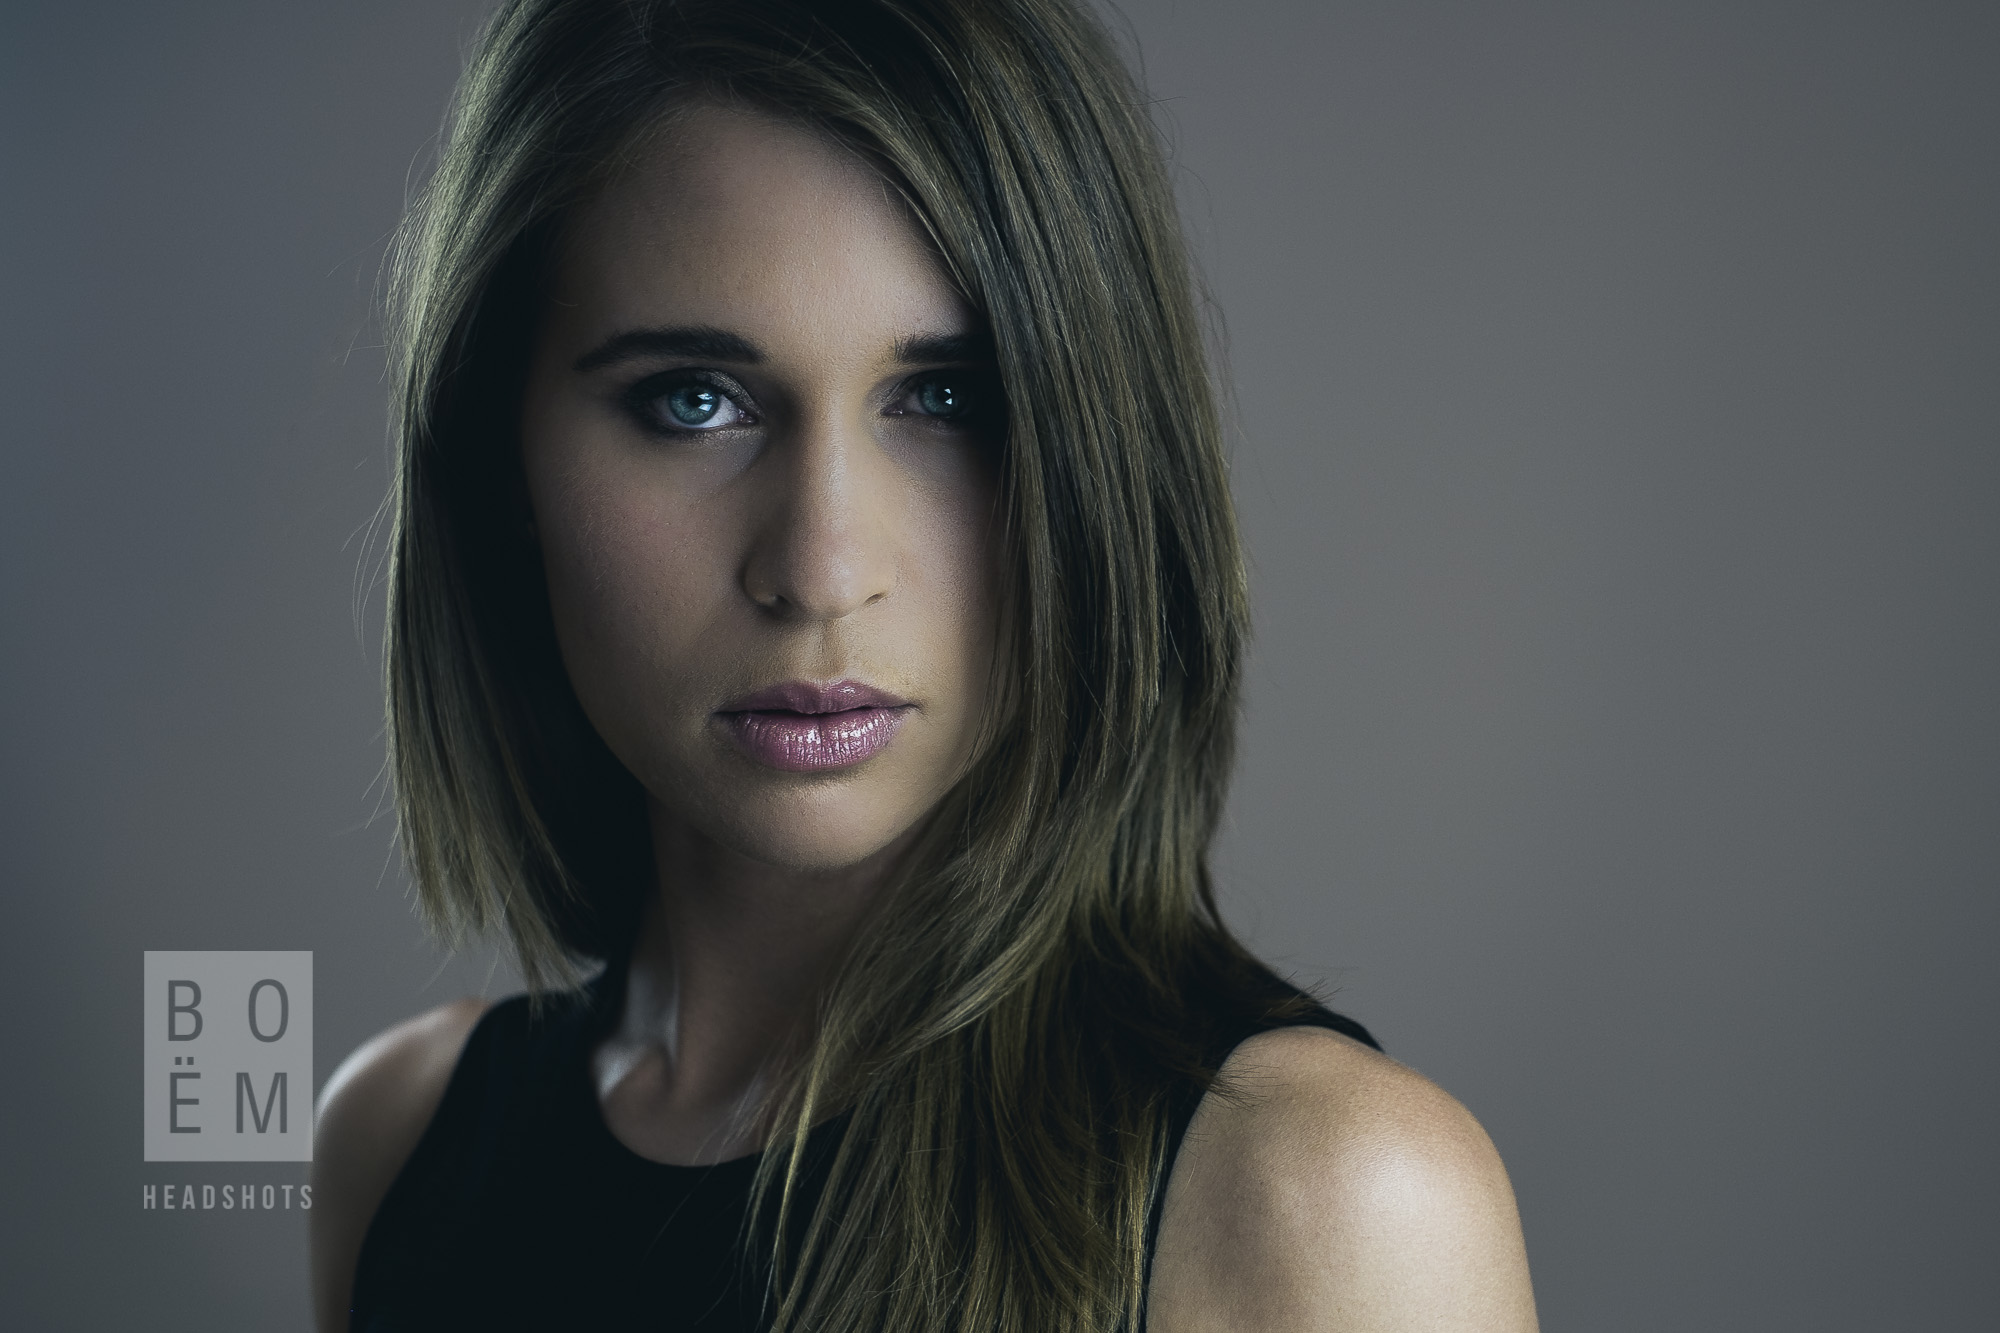 A professional headshot session with Amy, a process engineer and model in Adelaide.